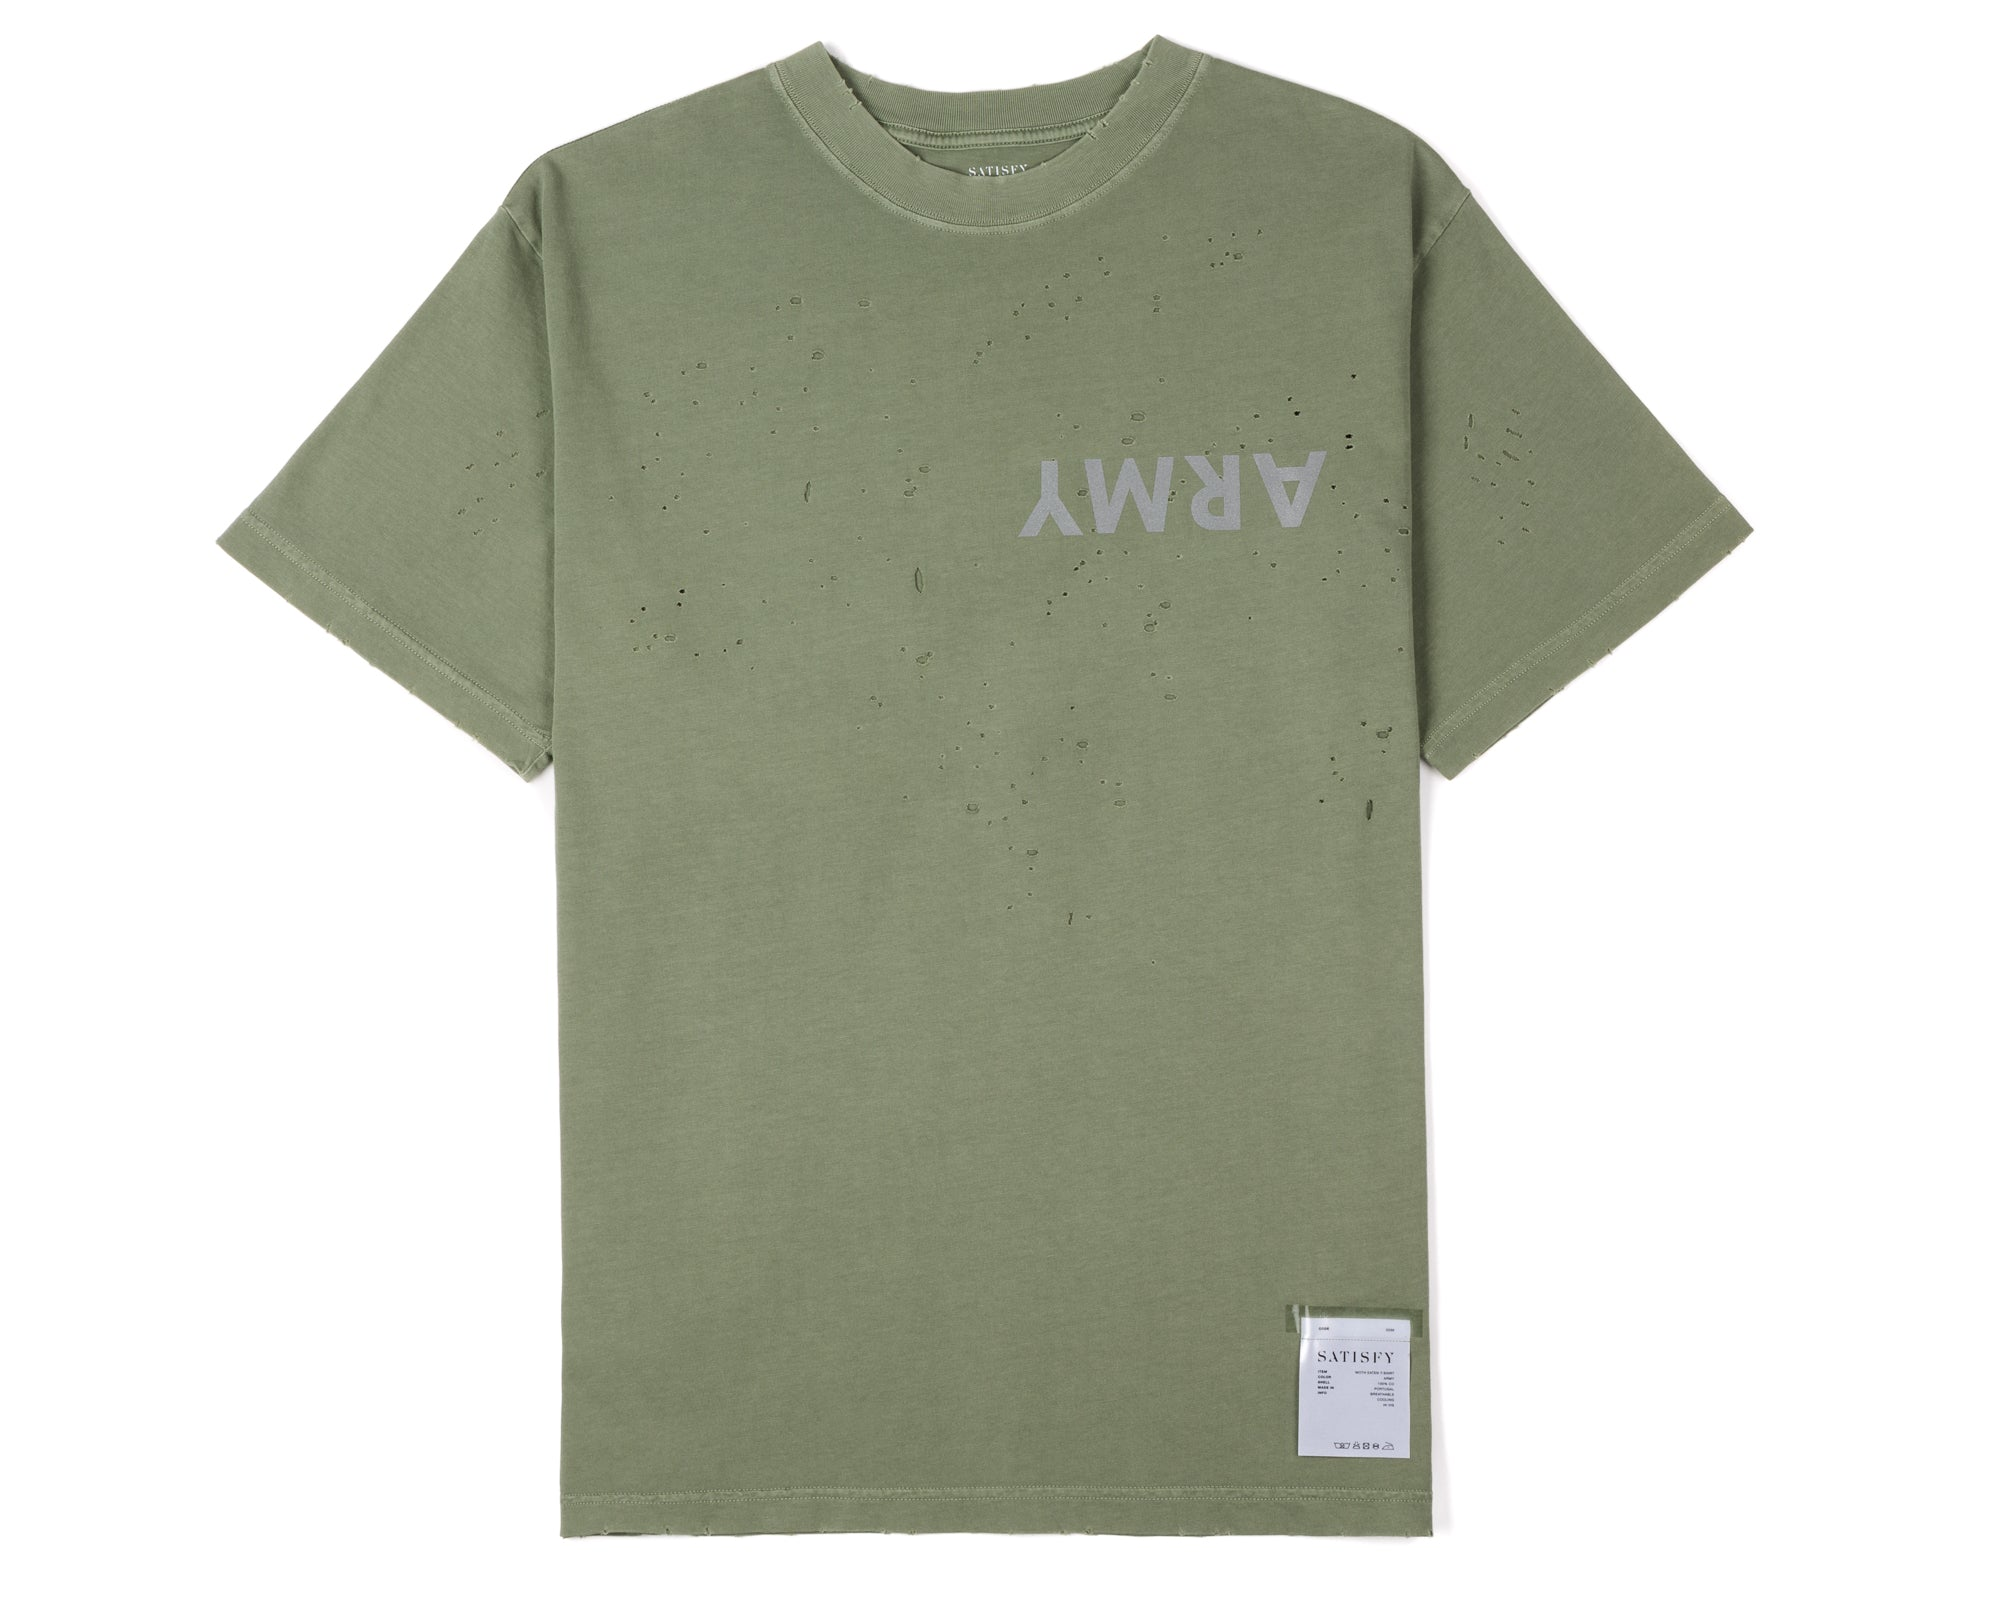 Moth Eaten T-Shirt - Army - Front